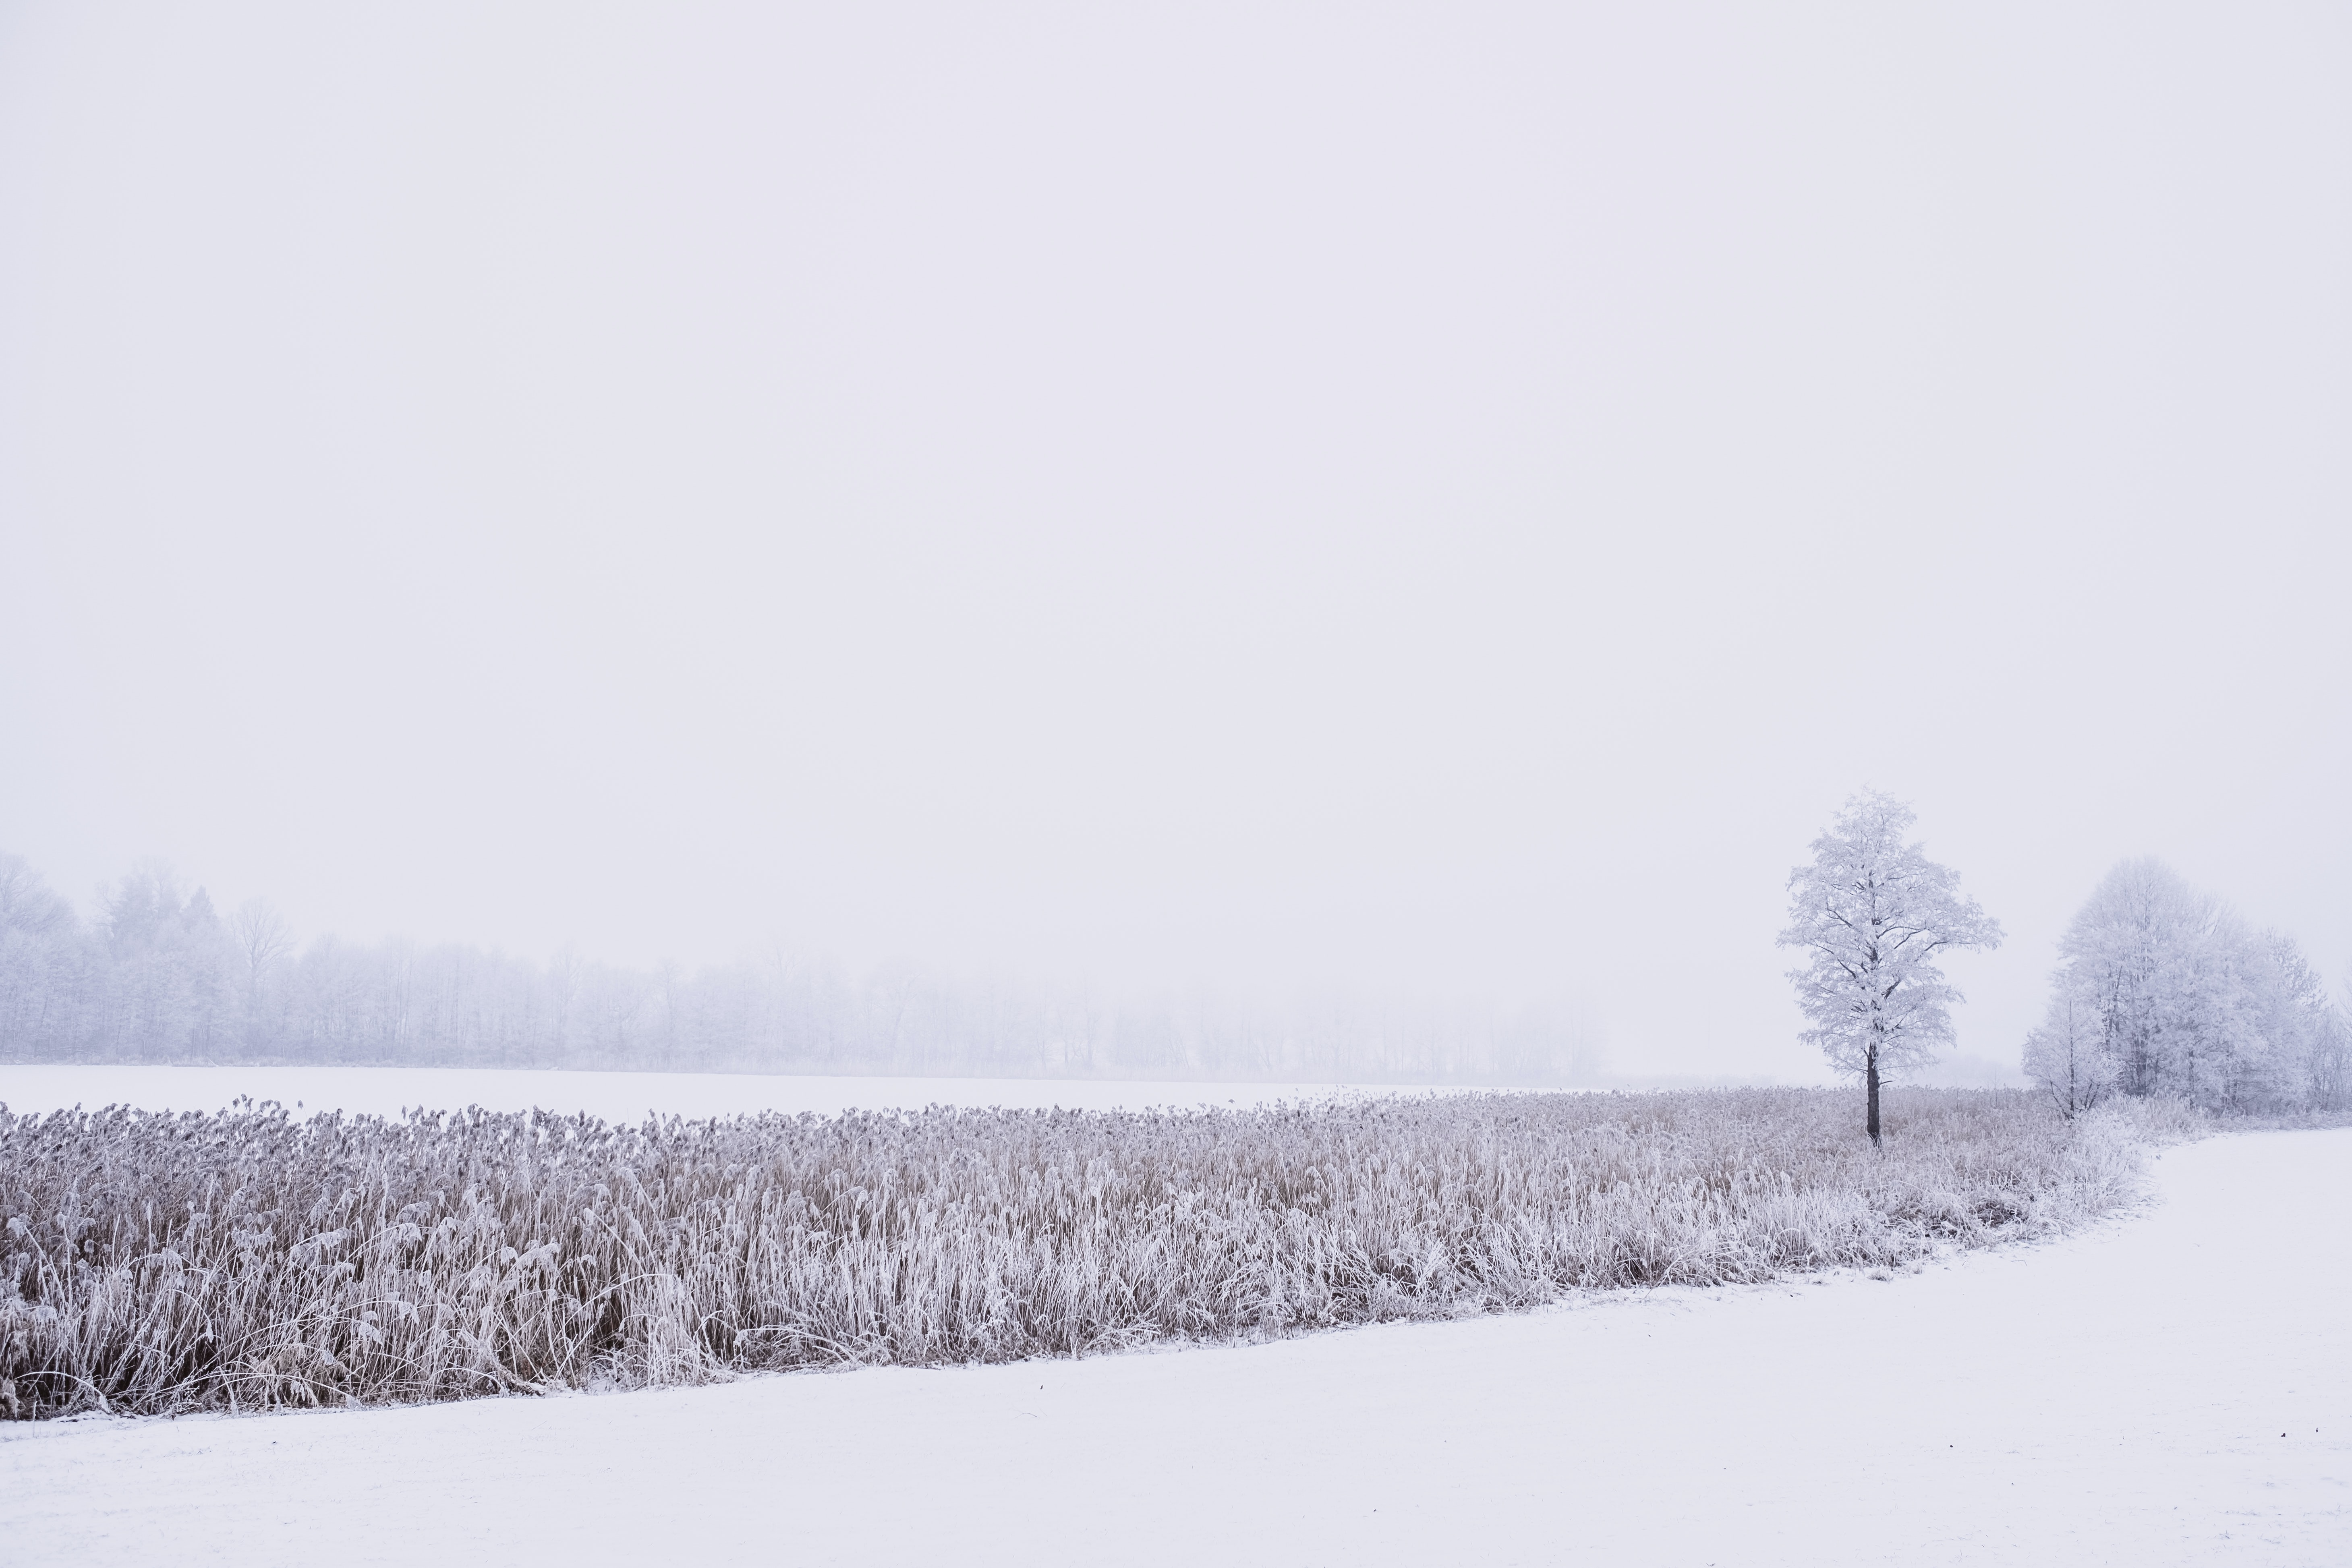 snow covered grass at daytime